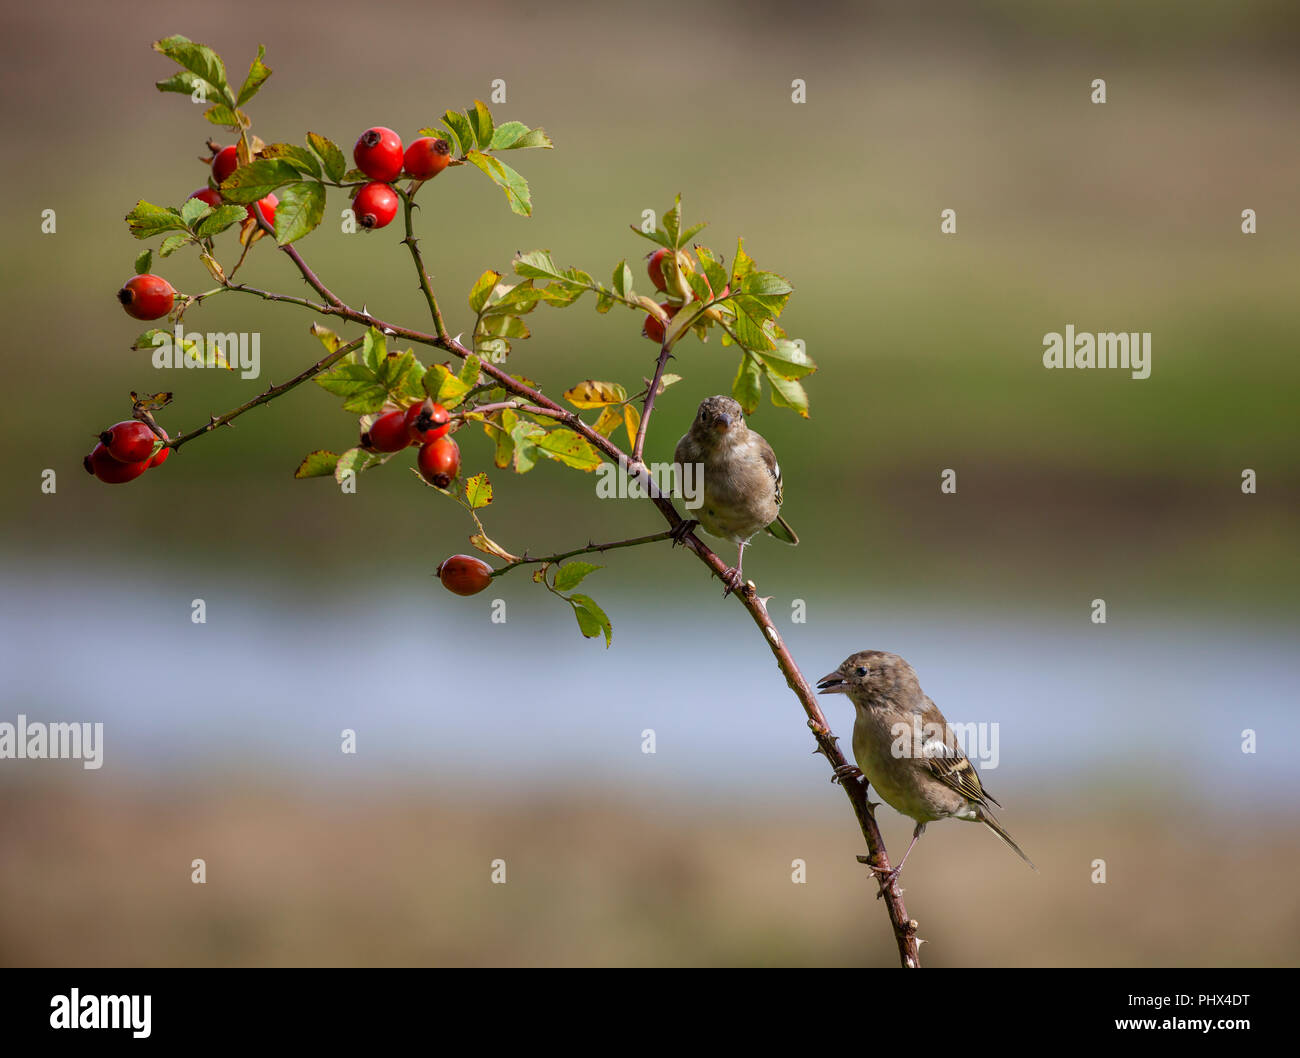 Two female or juvenile Common Chaffinches, Fringilla coelebs, perched on a branch with leaves and rose hips against a defocussed natural background. - Stock Image